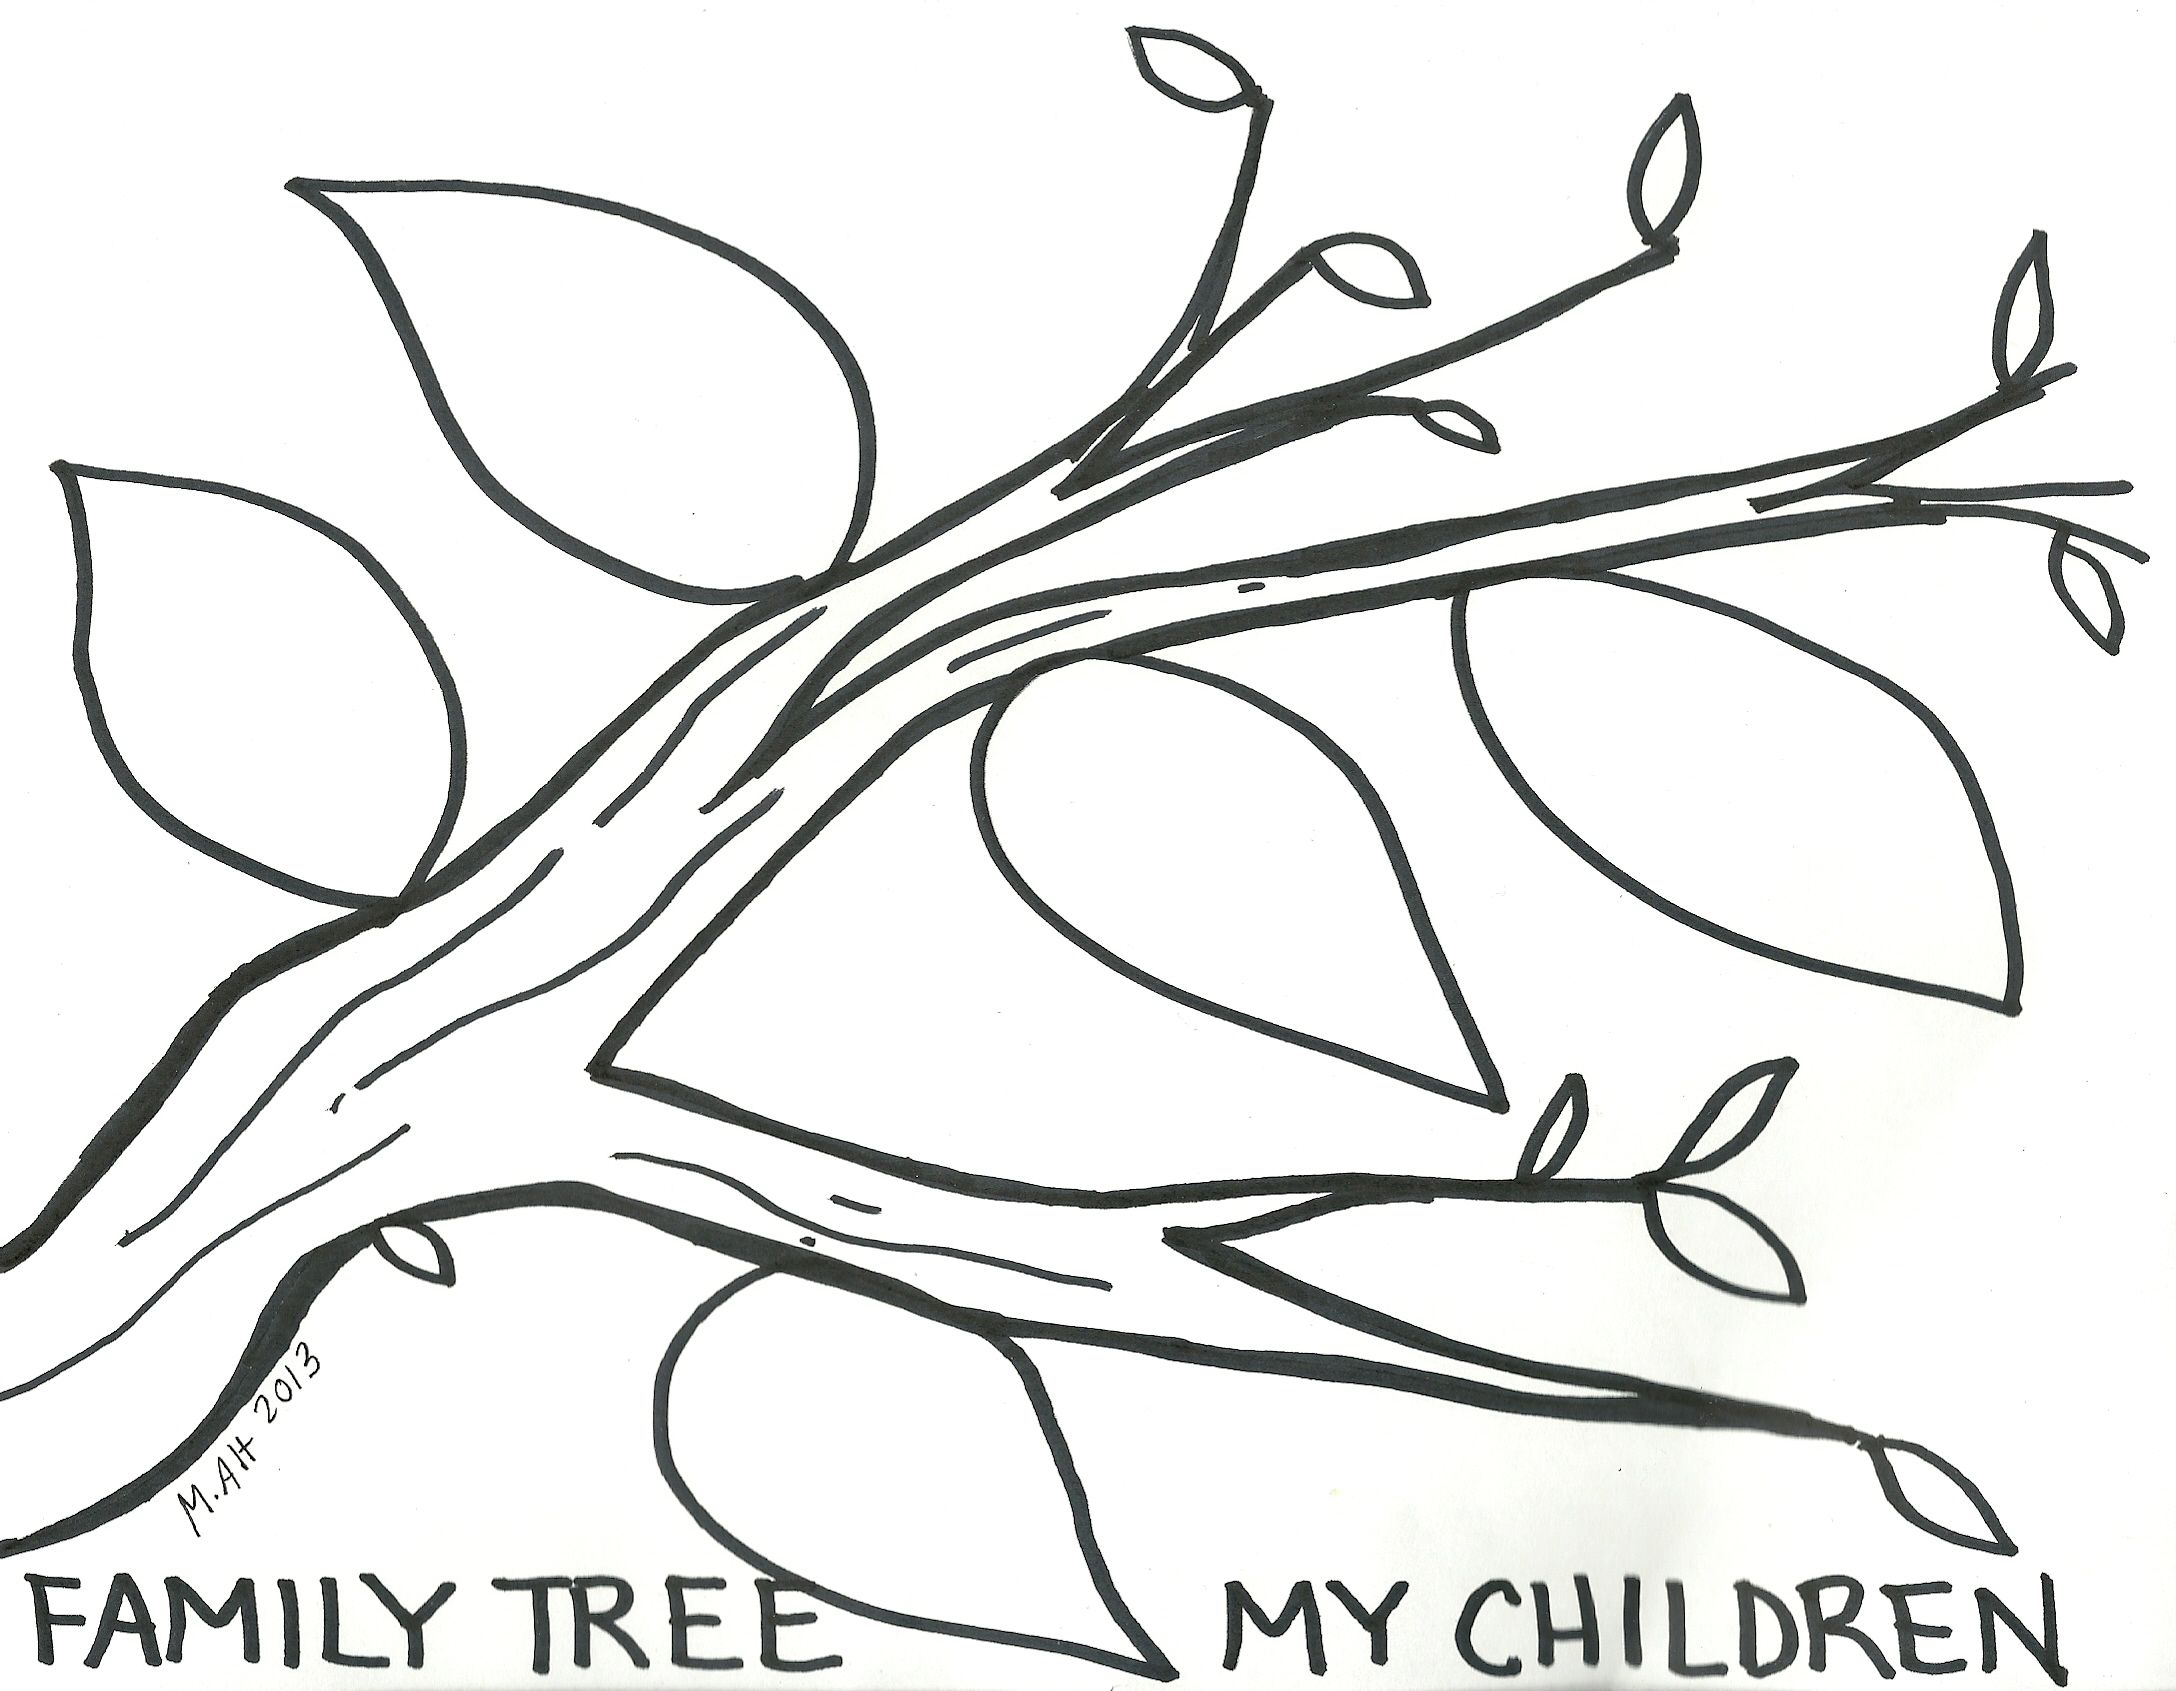 I designed this family tree coloring page for the